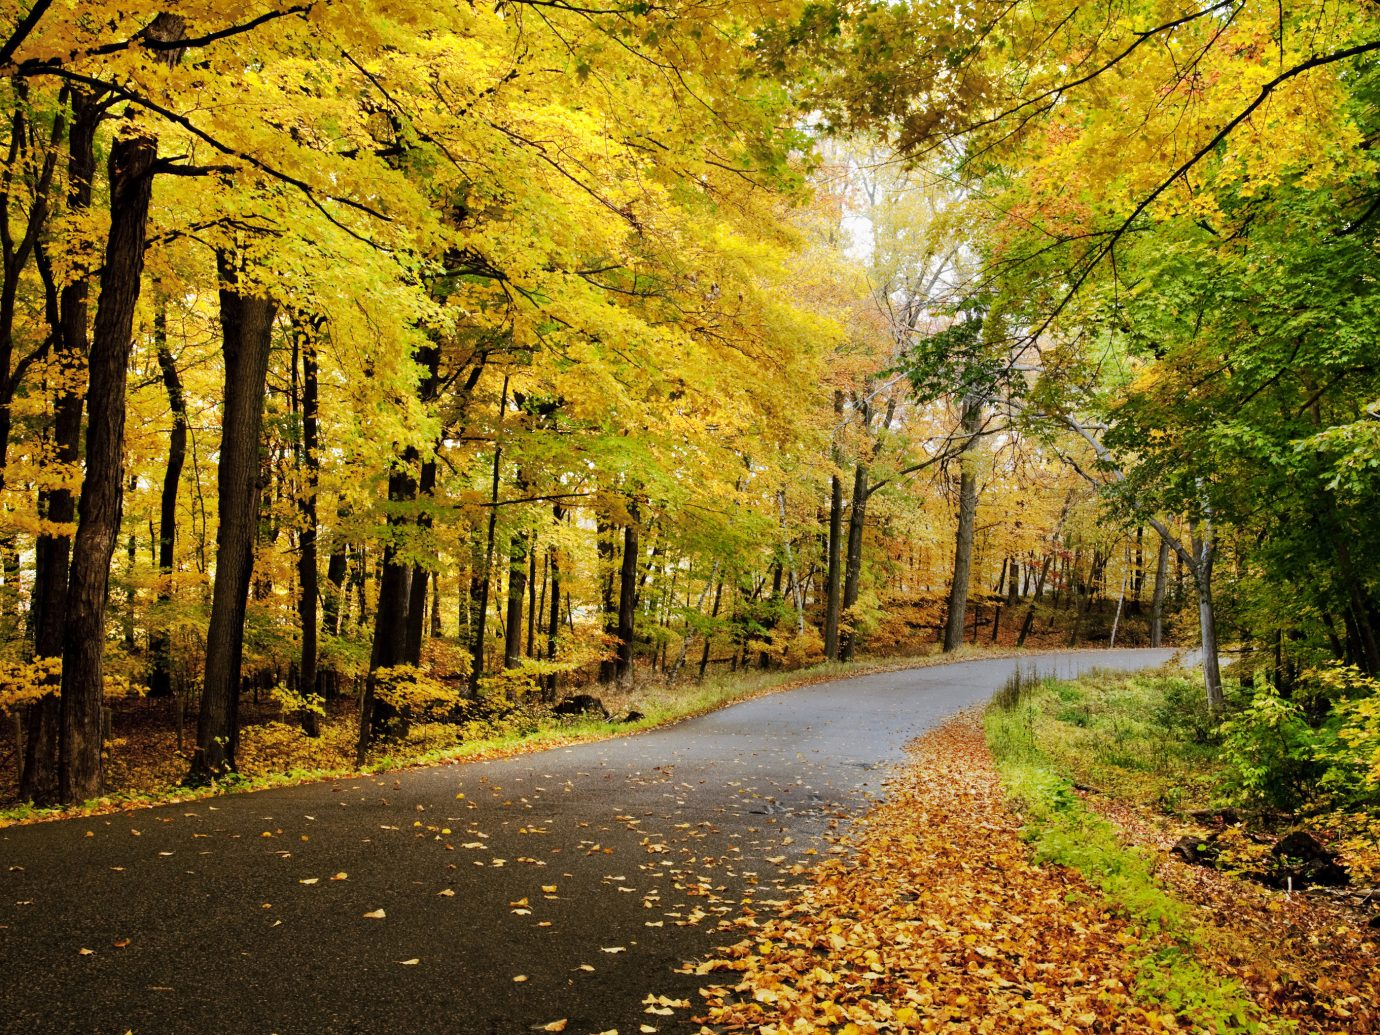 Outdoors + Adventure Road Trips Trip Ideas tree outdoor grass leaf Nature autumn yellow path woodland woody plant deciduous grove sunlight temperate broadleaf and mixed forest Forest branch morning sky maidenhair tree landscape plant evening spring computer wallpaper road way surrounded wooded